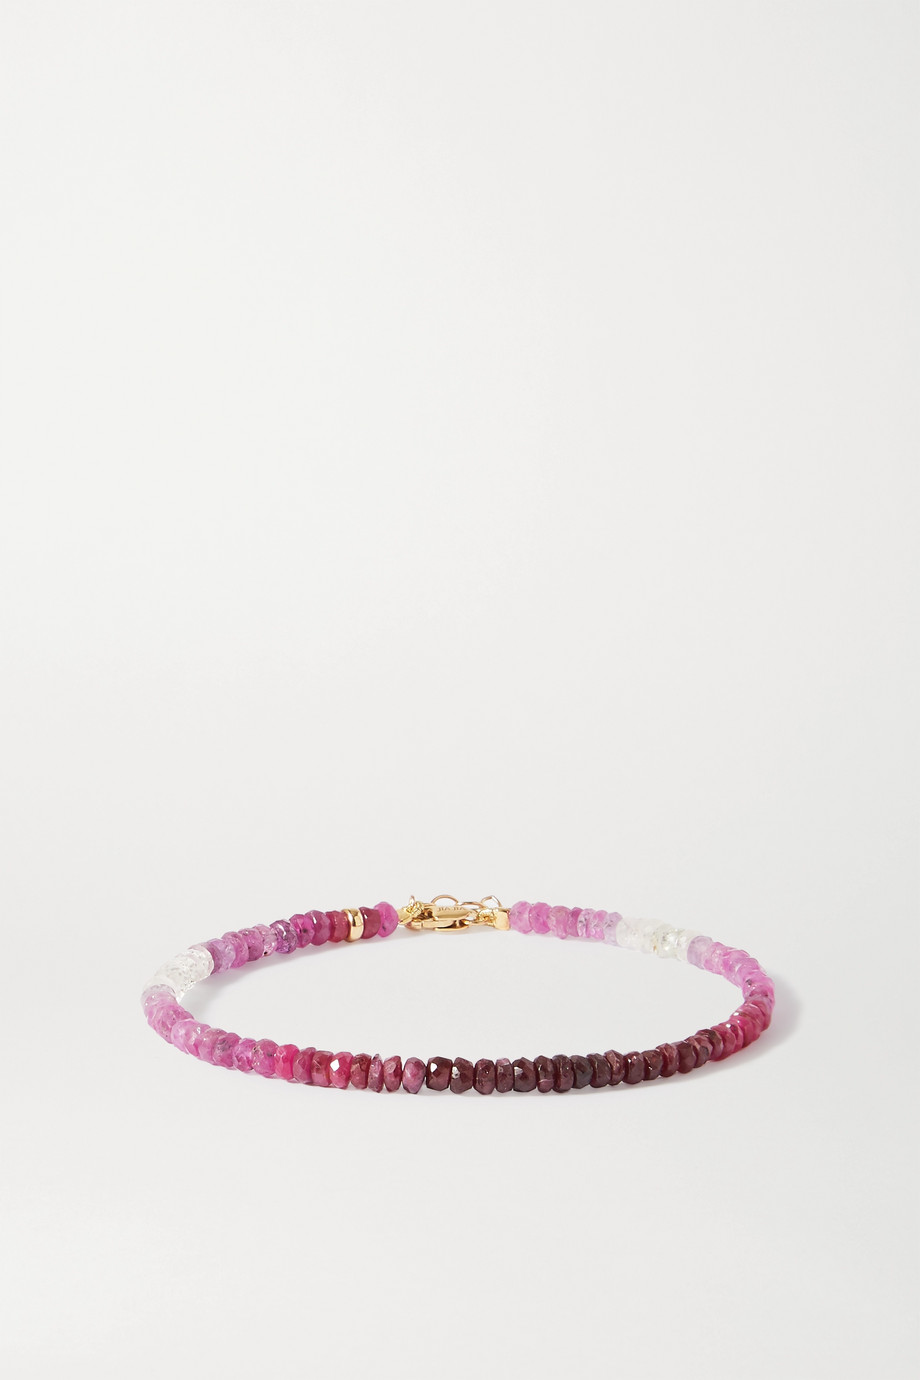 JIA JIA Arizona gold ruby bracelet